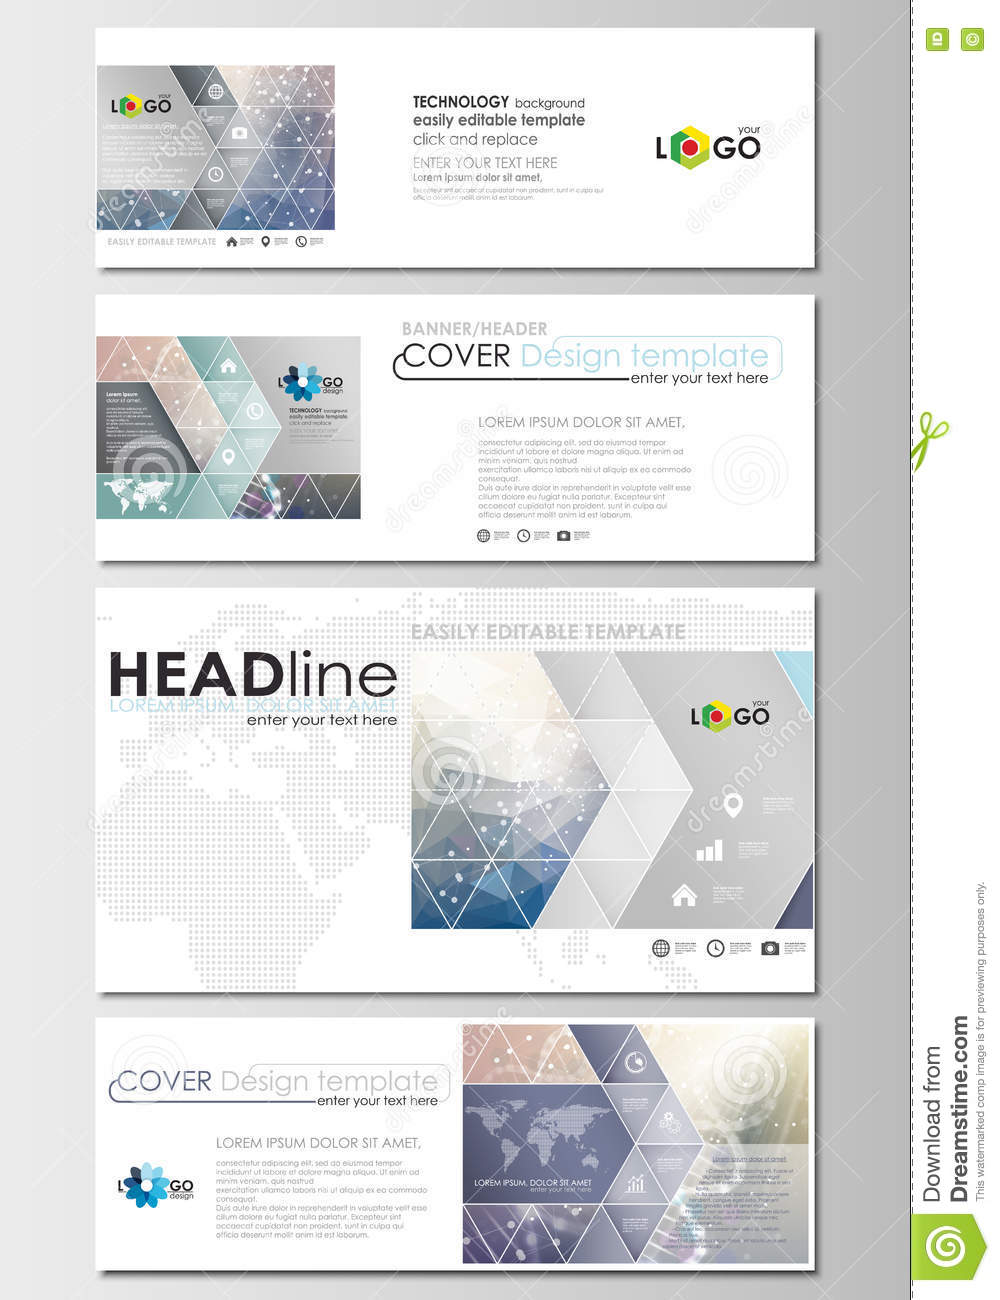 email banner template